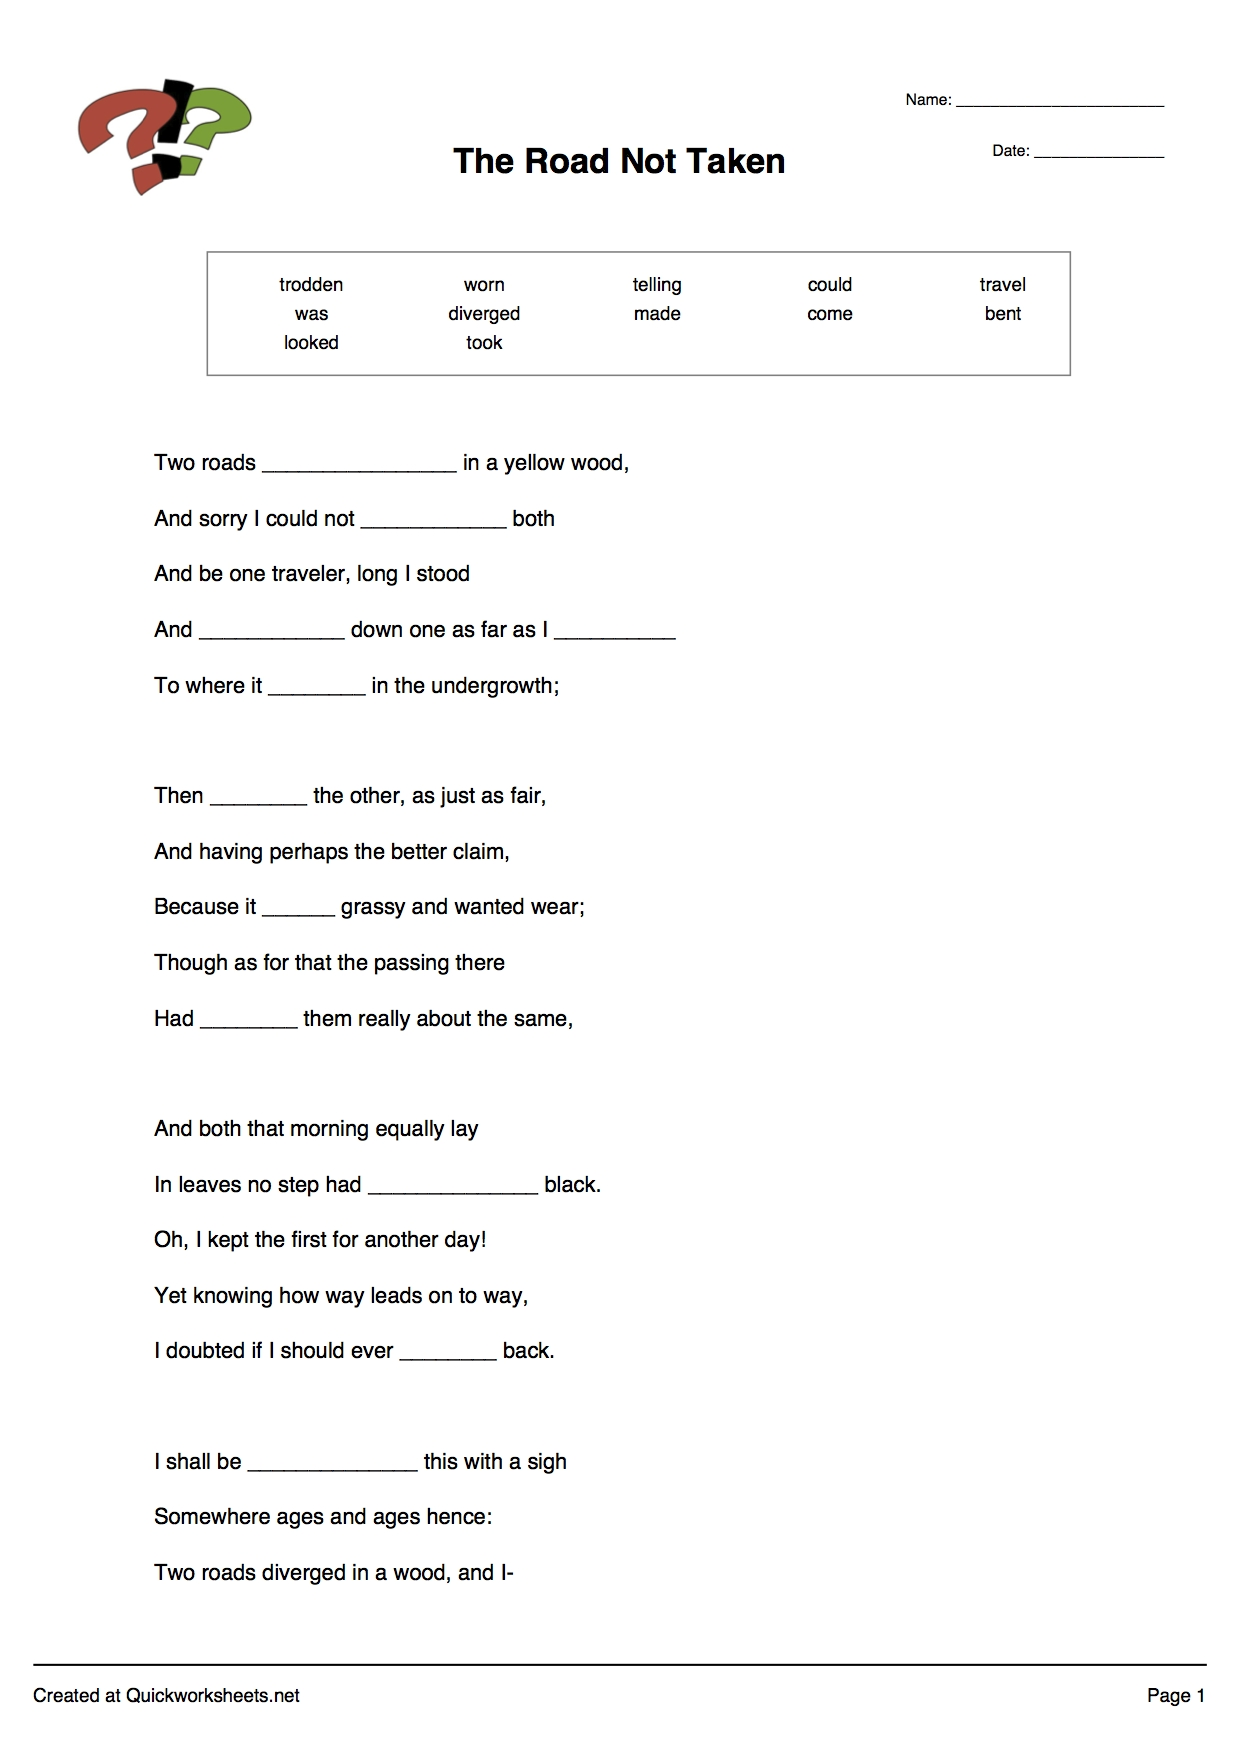 Word Scramble, Wordsearch, Crossword, Matching Pairs And Other with regard to Fill In The Blank Long A